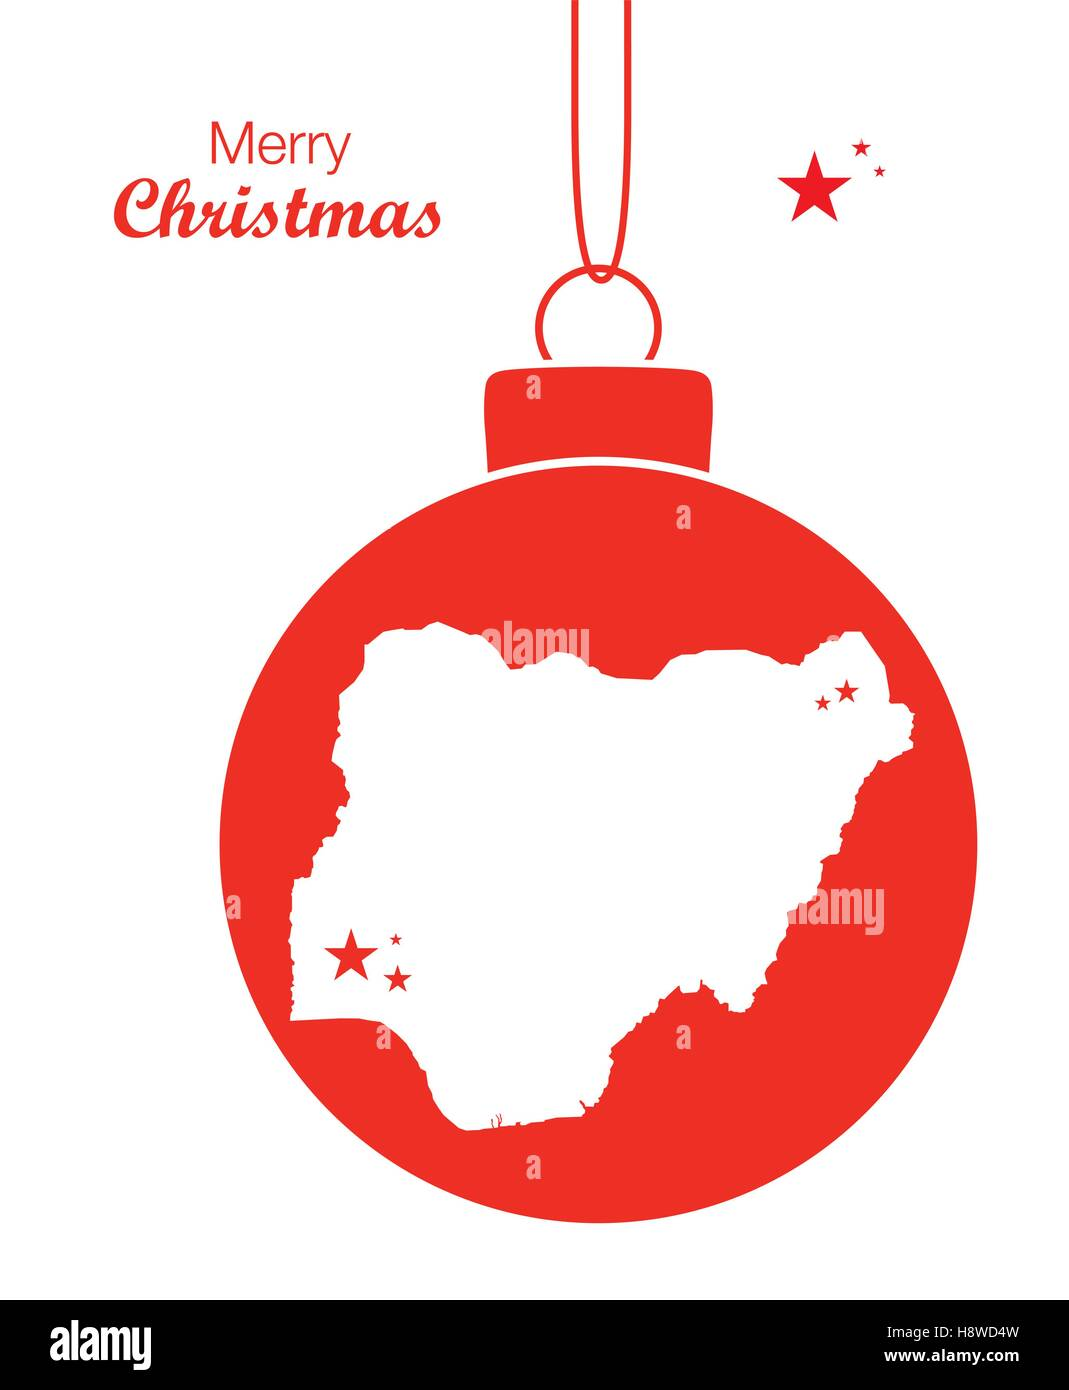 Merry Christmas illustration theme with map of Nigeria - Stock Vector